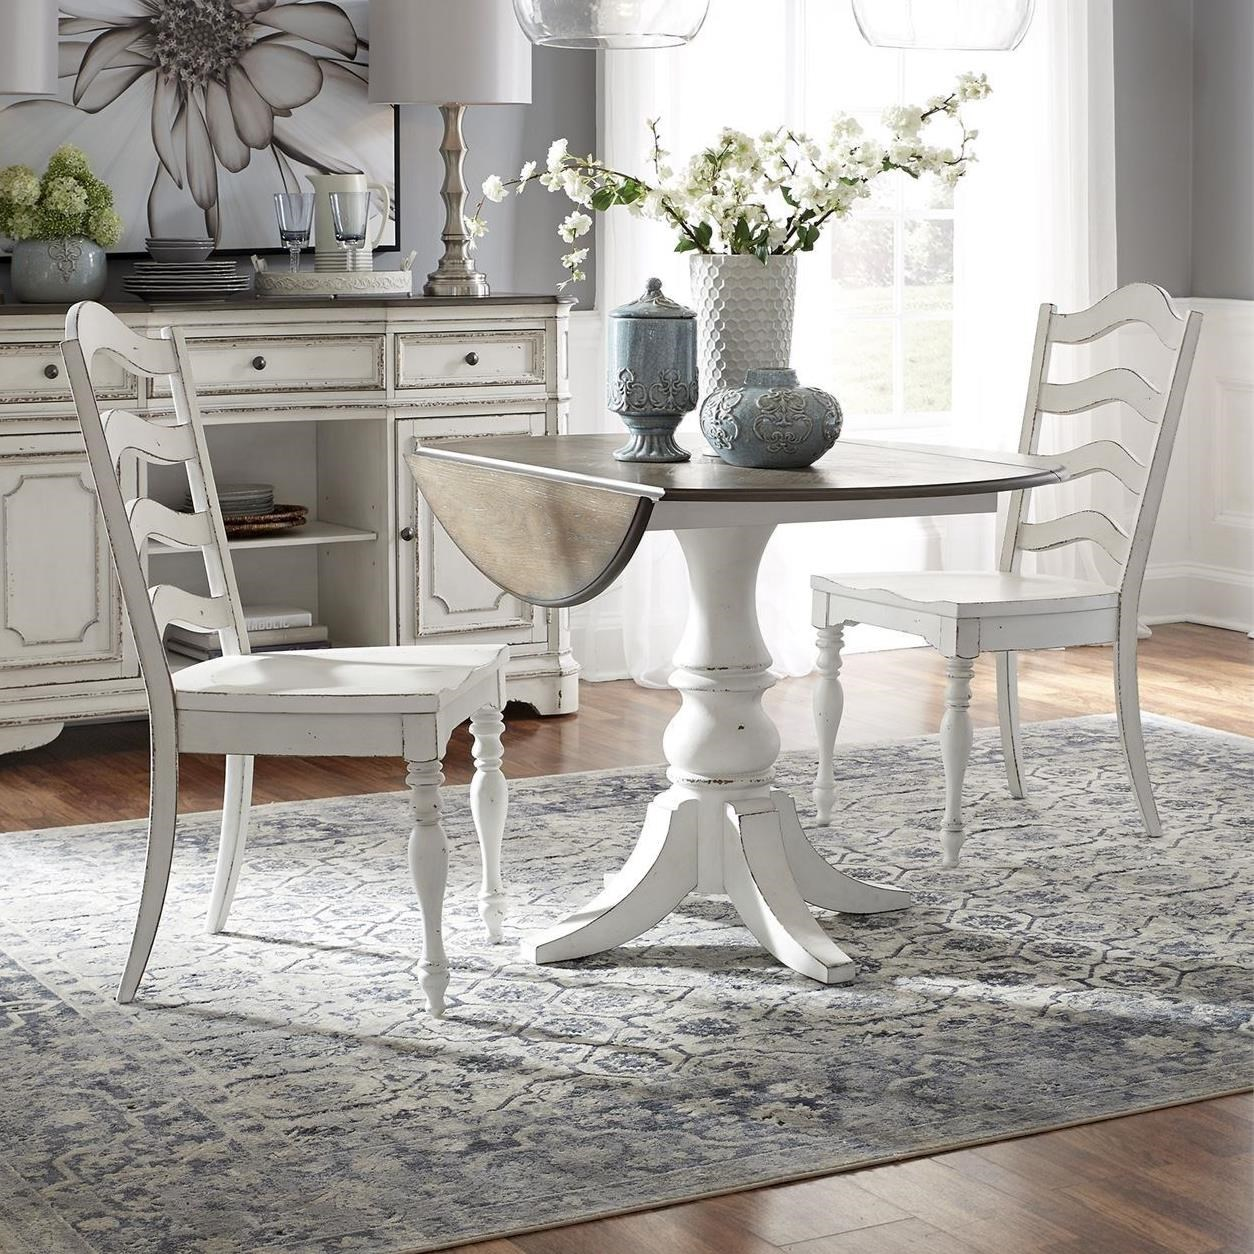 3 Piece Table and Chair Set